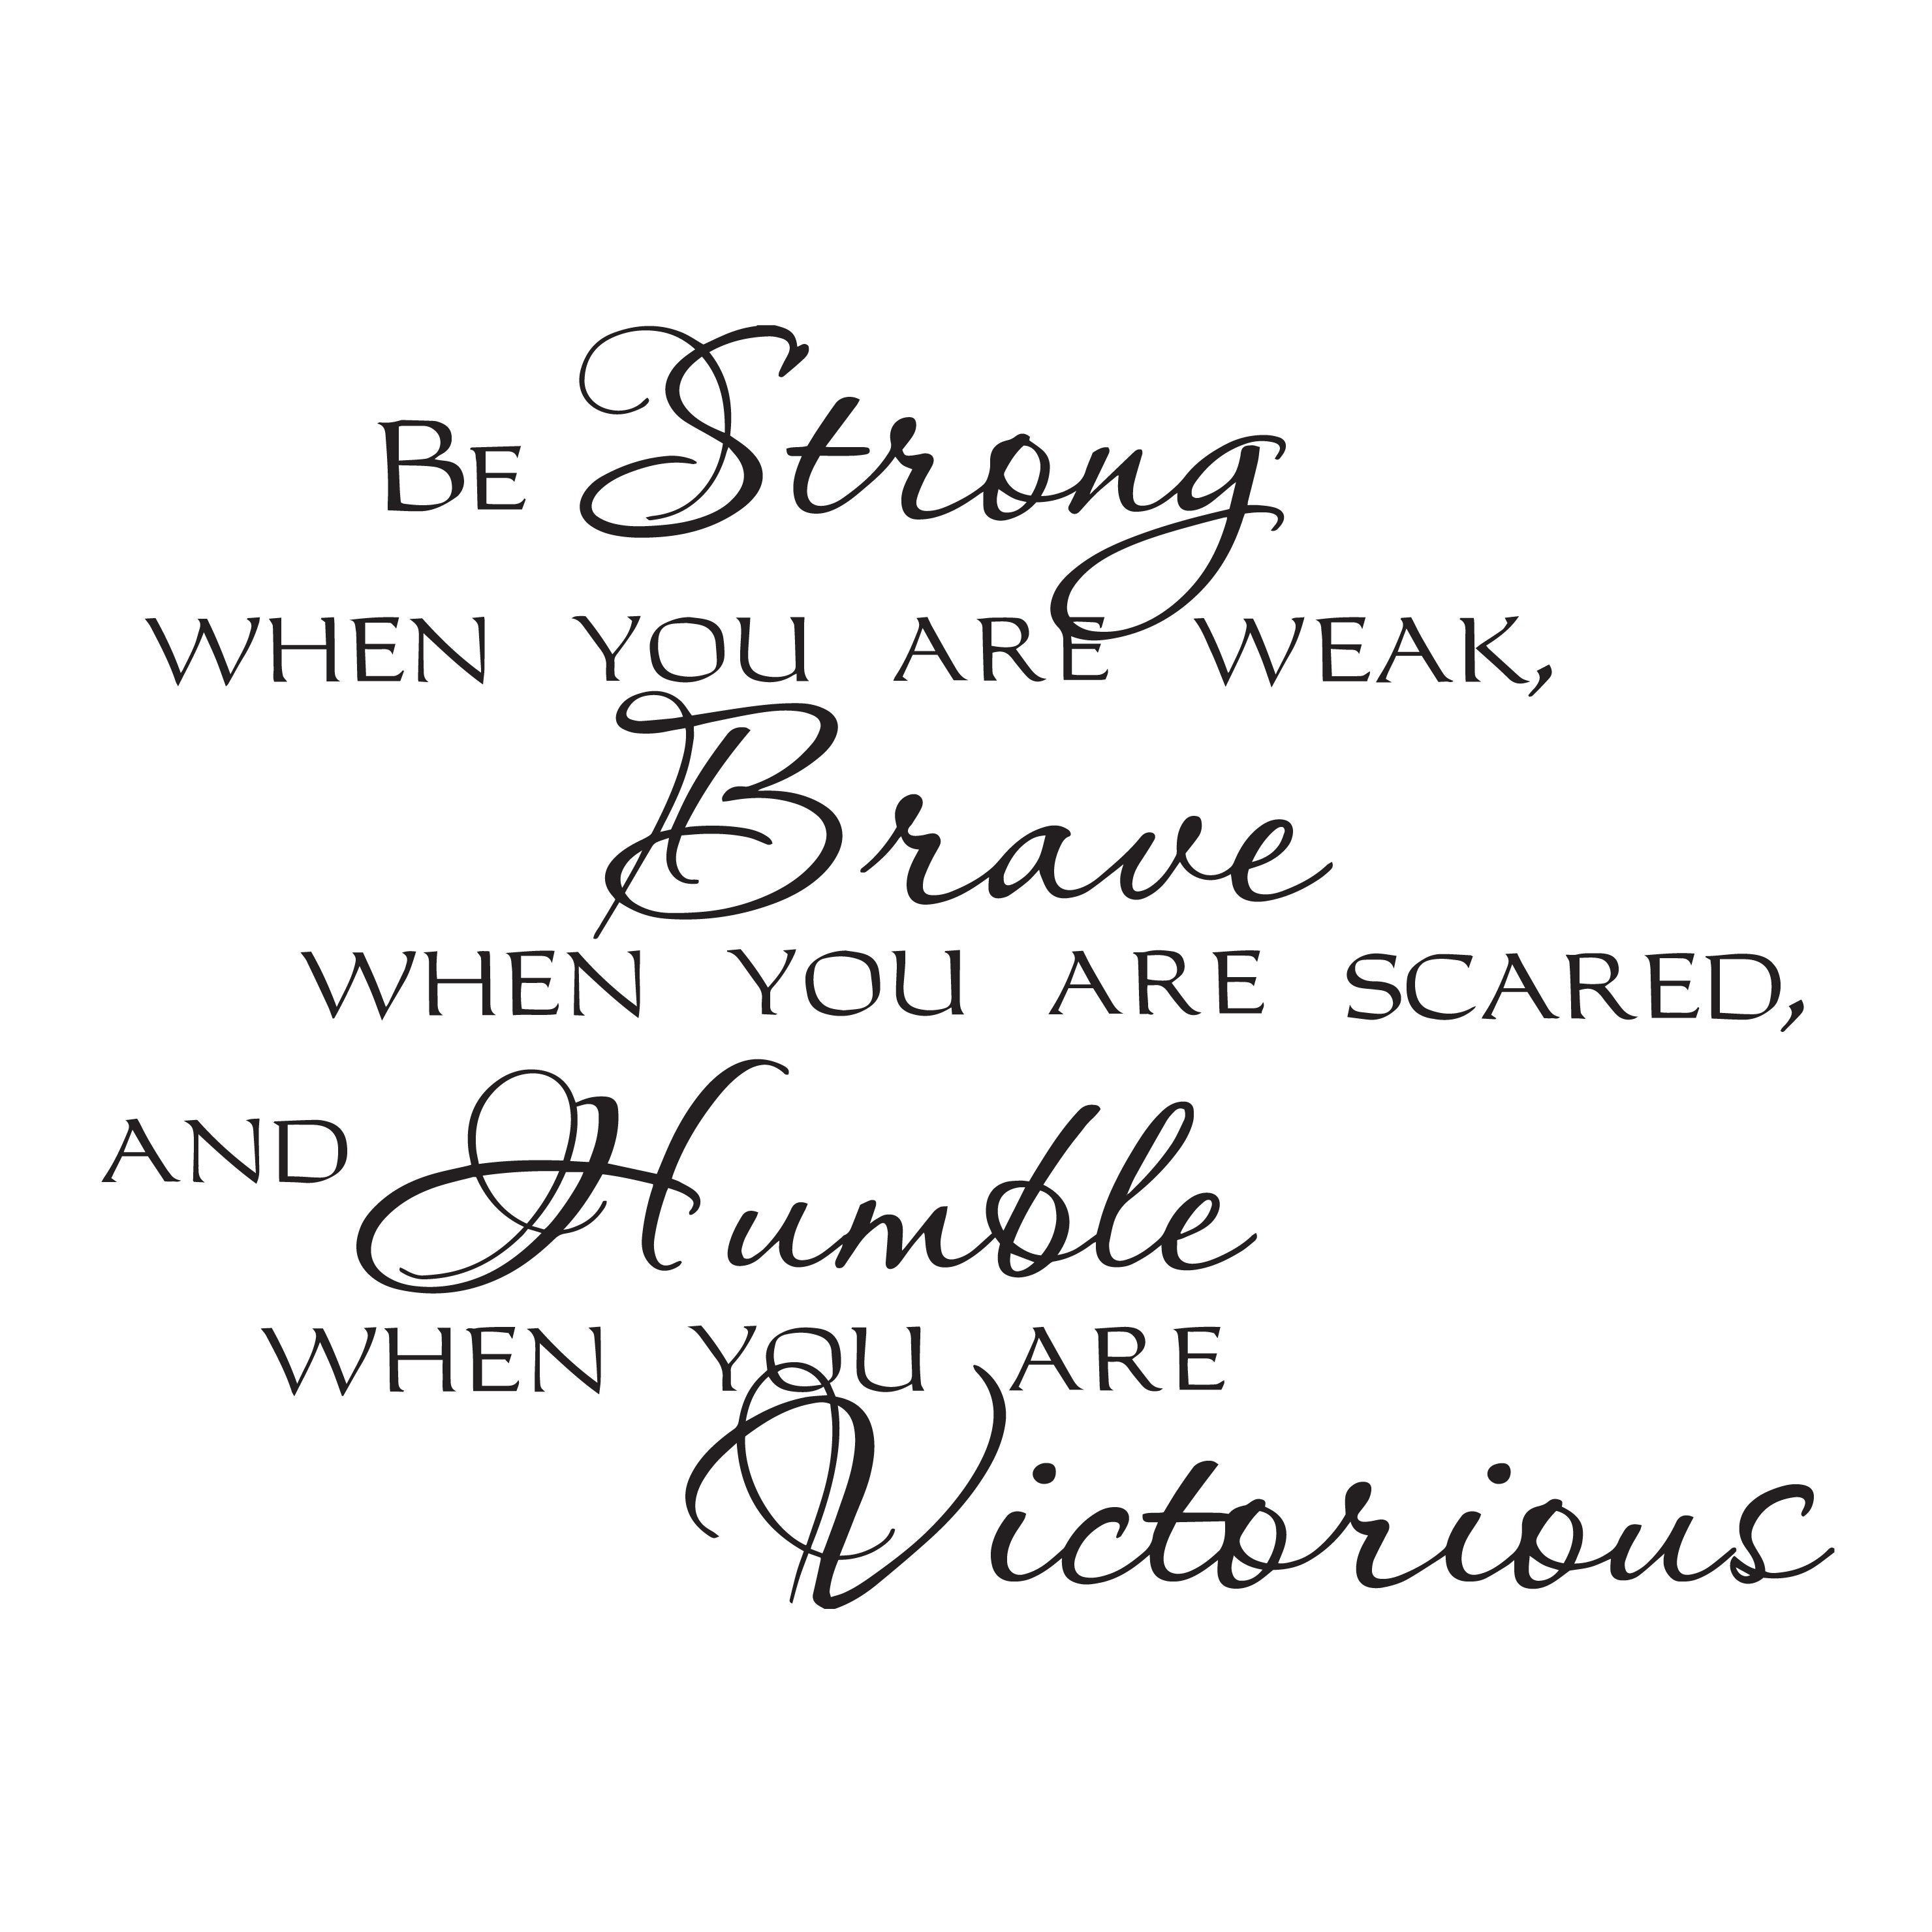 Wall Decal Strong Brave Victorious Motivation Quote Interior Vinyl Decor Black 35 in x 22.5 in gz556